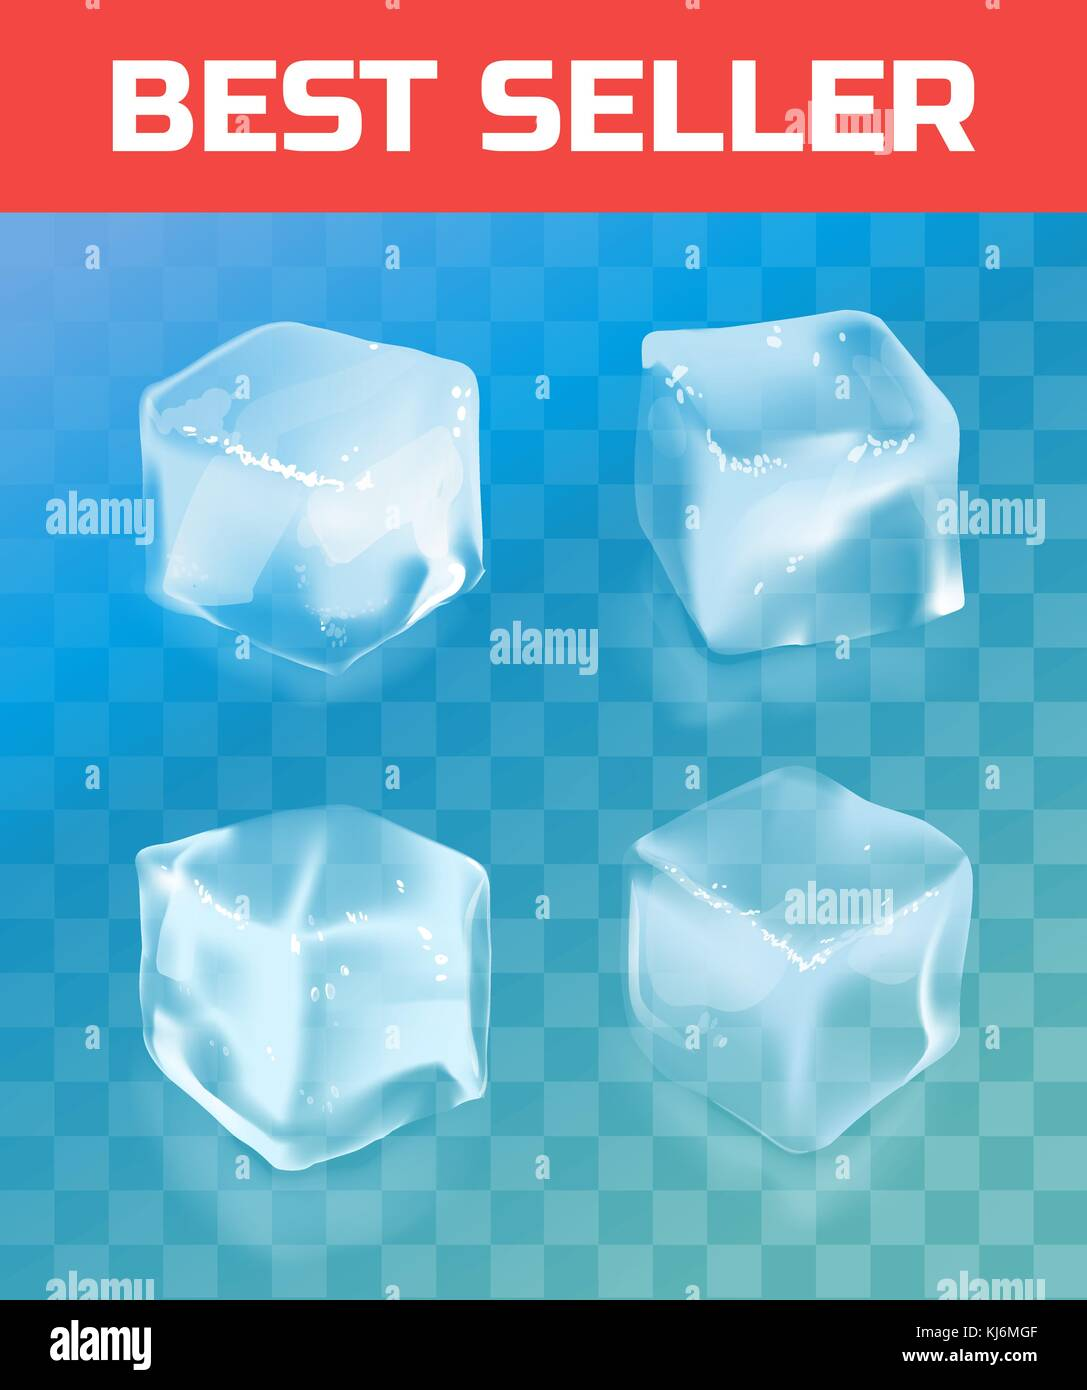 Ice cube. Realistic vector illustration isolated on background. - Stock Image